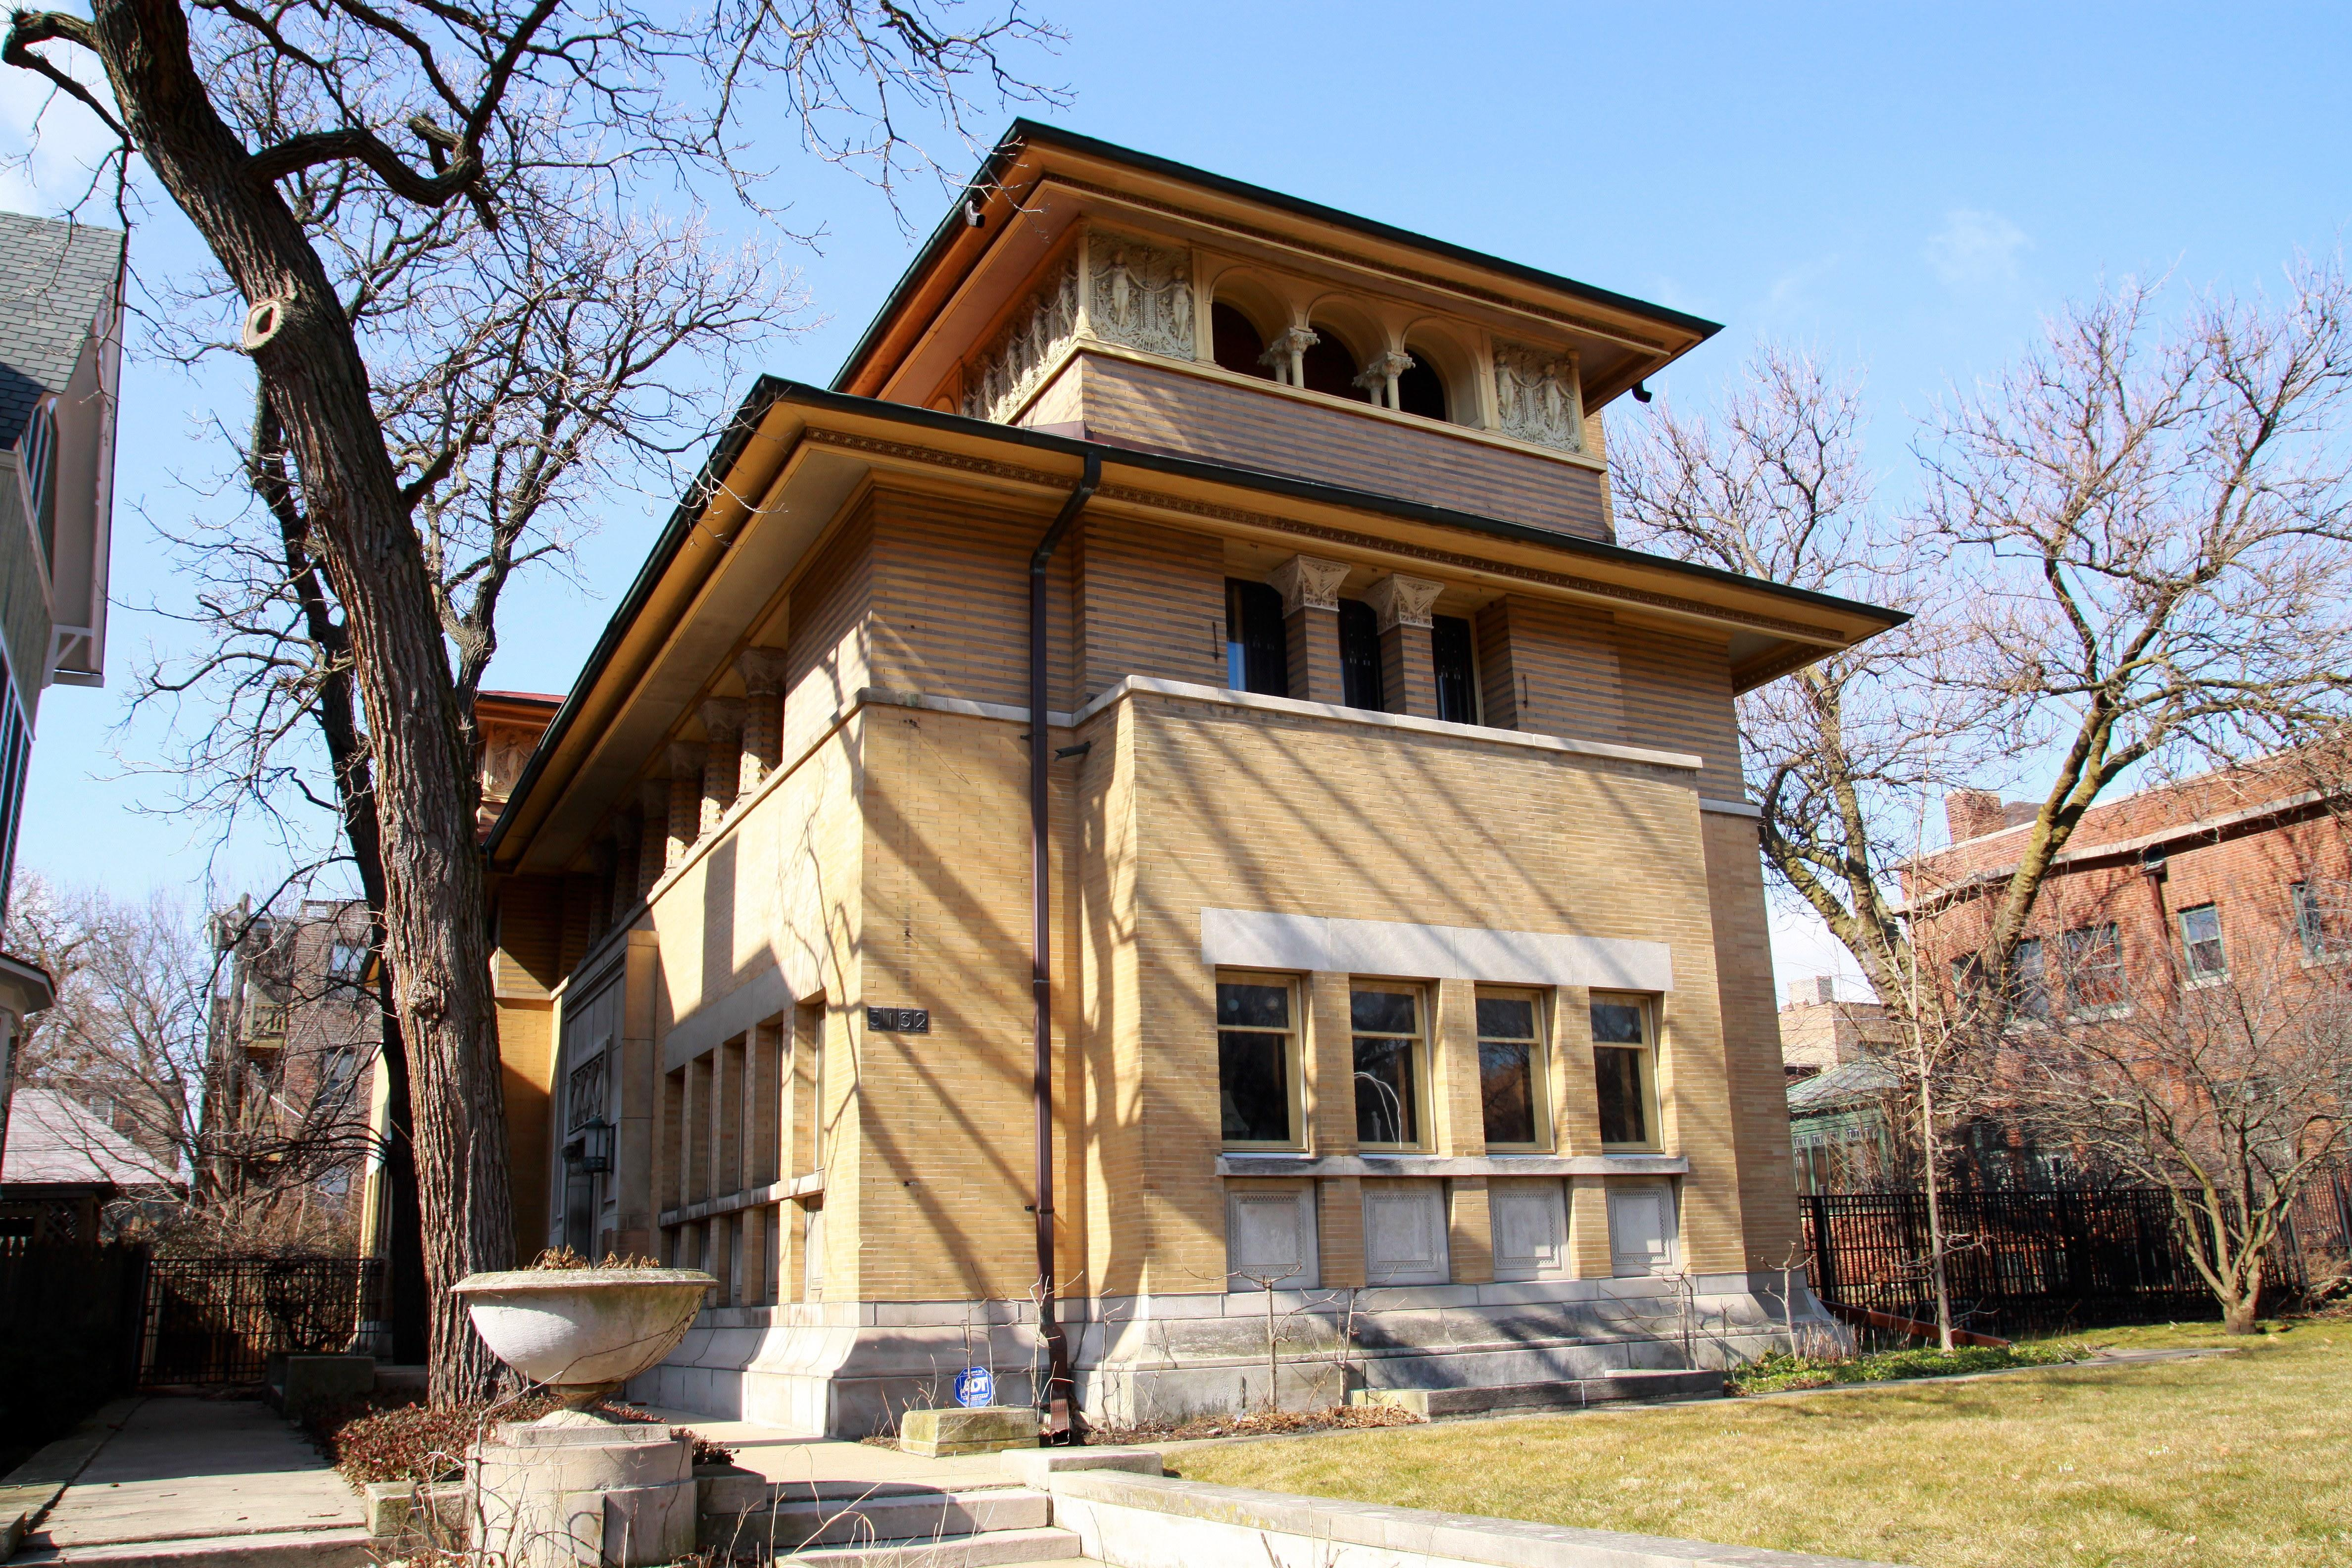 reliable quality cozy fresh detailing 122-Year-Old Frank Lloyd Wright Home for Sale in Chicago